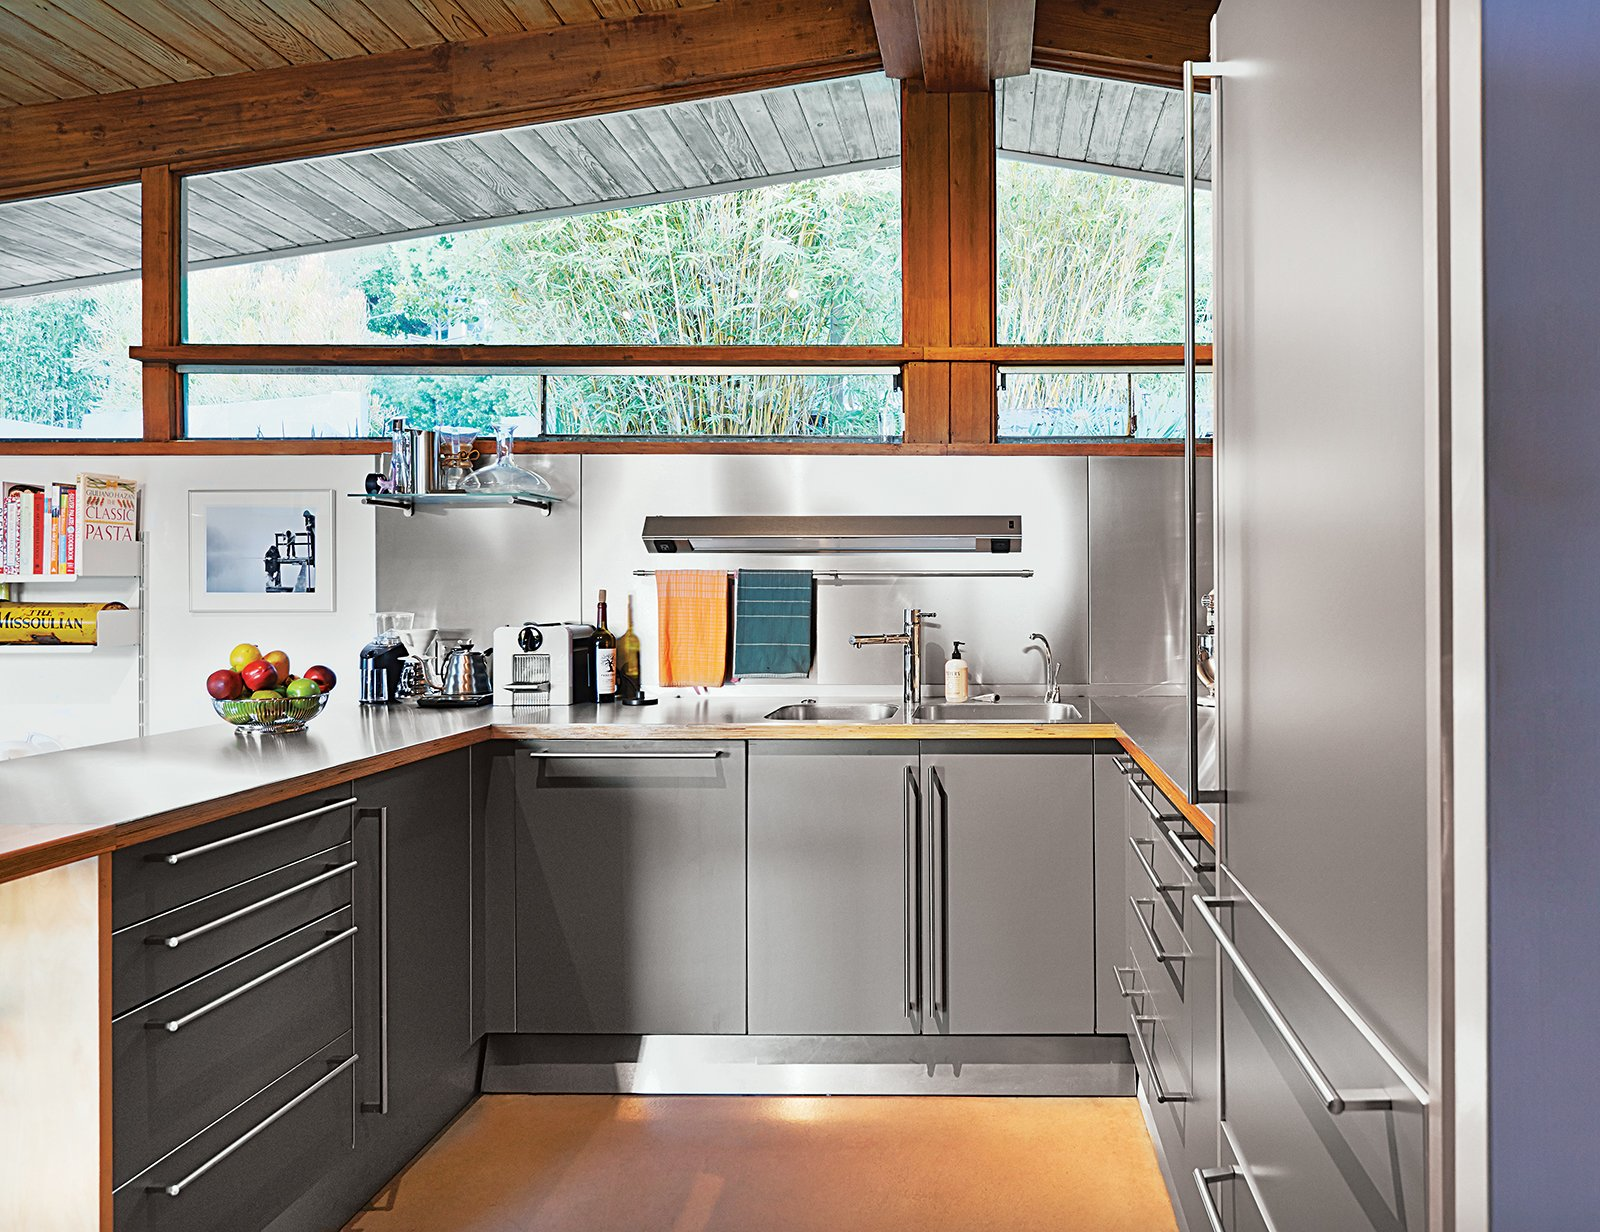 Kitchen and Metal Counter A previous owner remodeled the kitchen in 2000, outfitting it with stainless-steel cabinets by Bulthaup as well as a Sub-Zero refrigerator and an induction stove by Diva.  Photo 8 of 10 in A Midcentury Home Keeps the History Alive